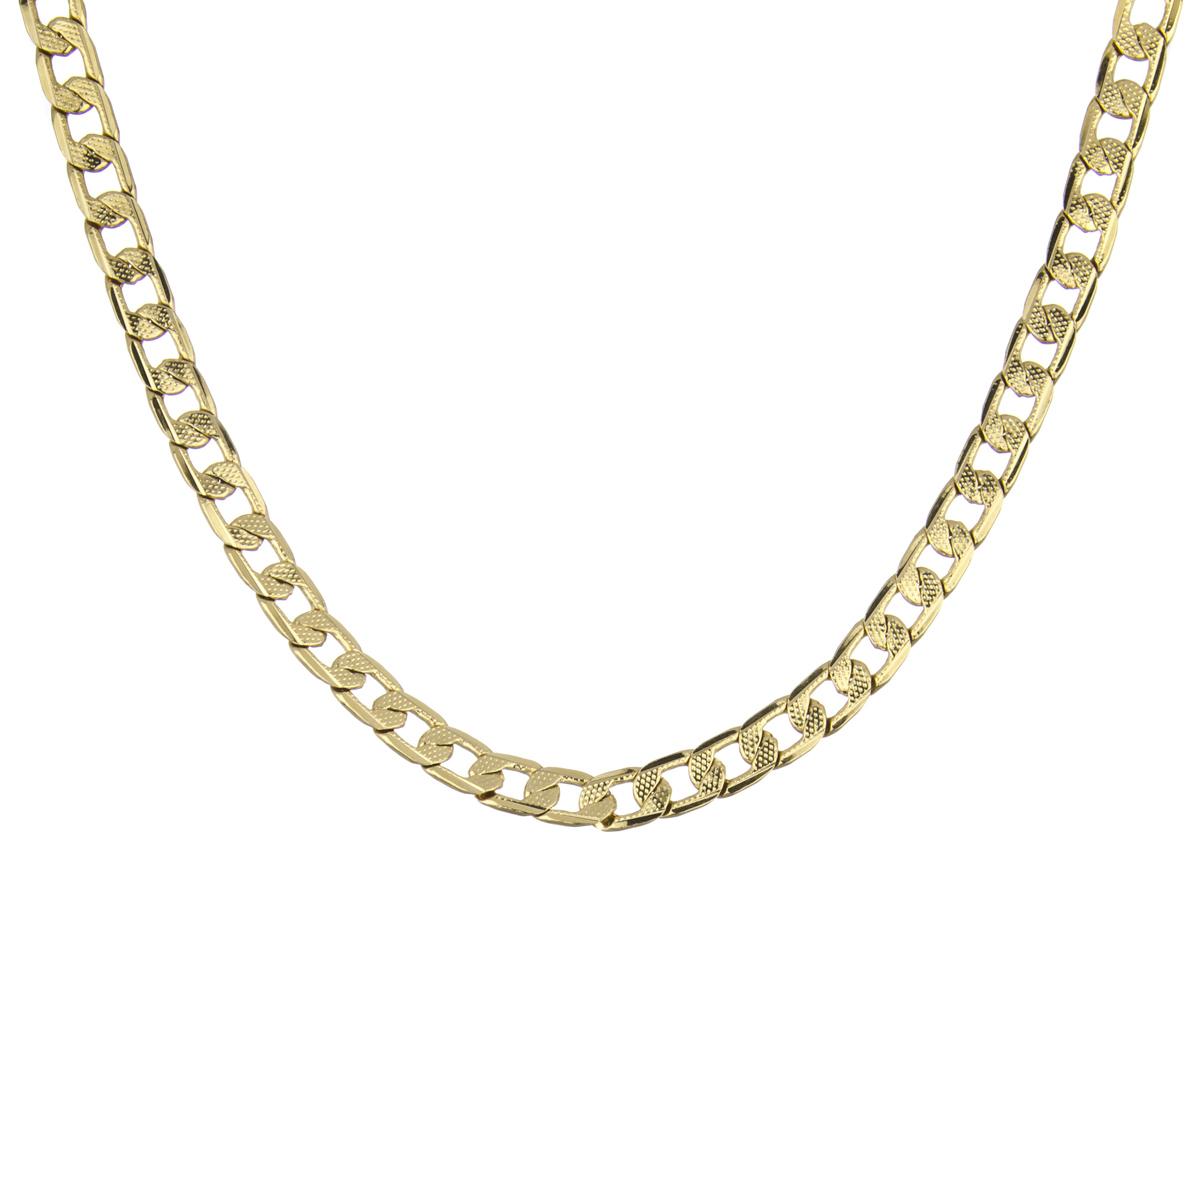 s goldtone cuban link necklace chain 19 inches